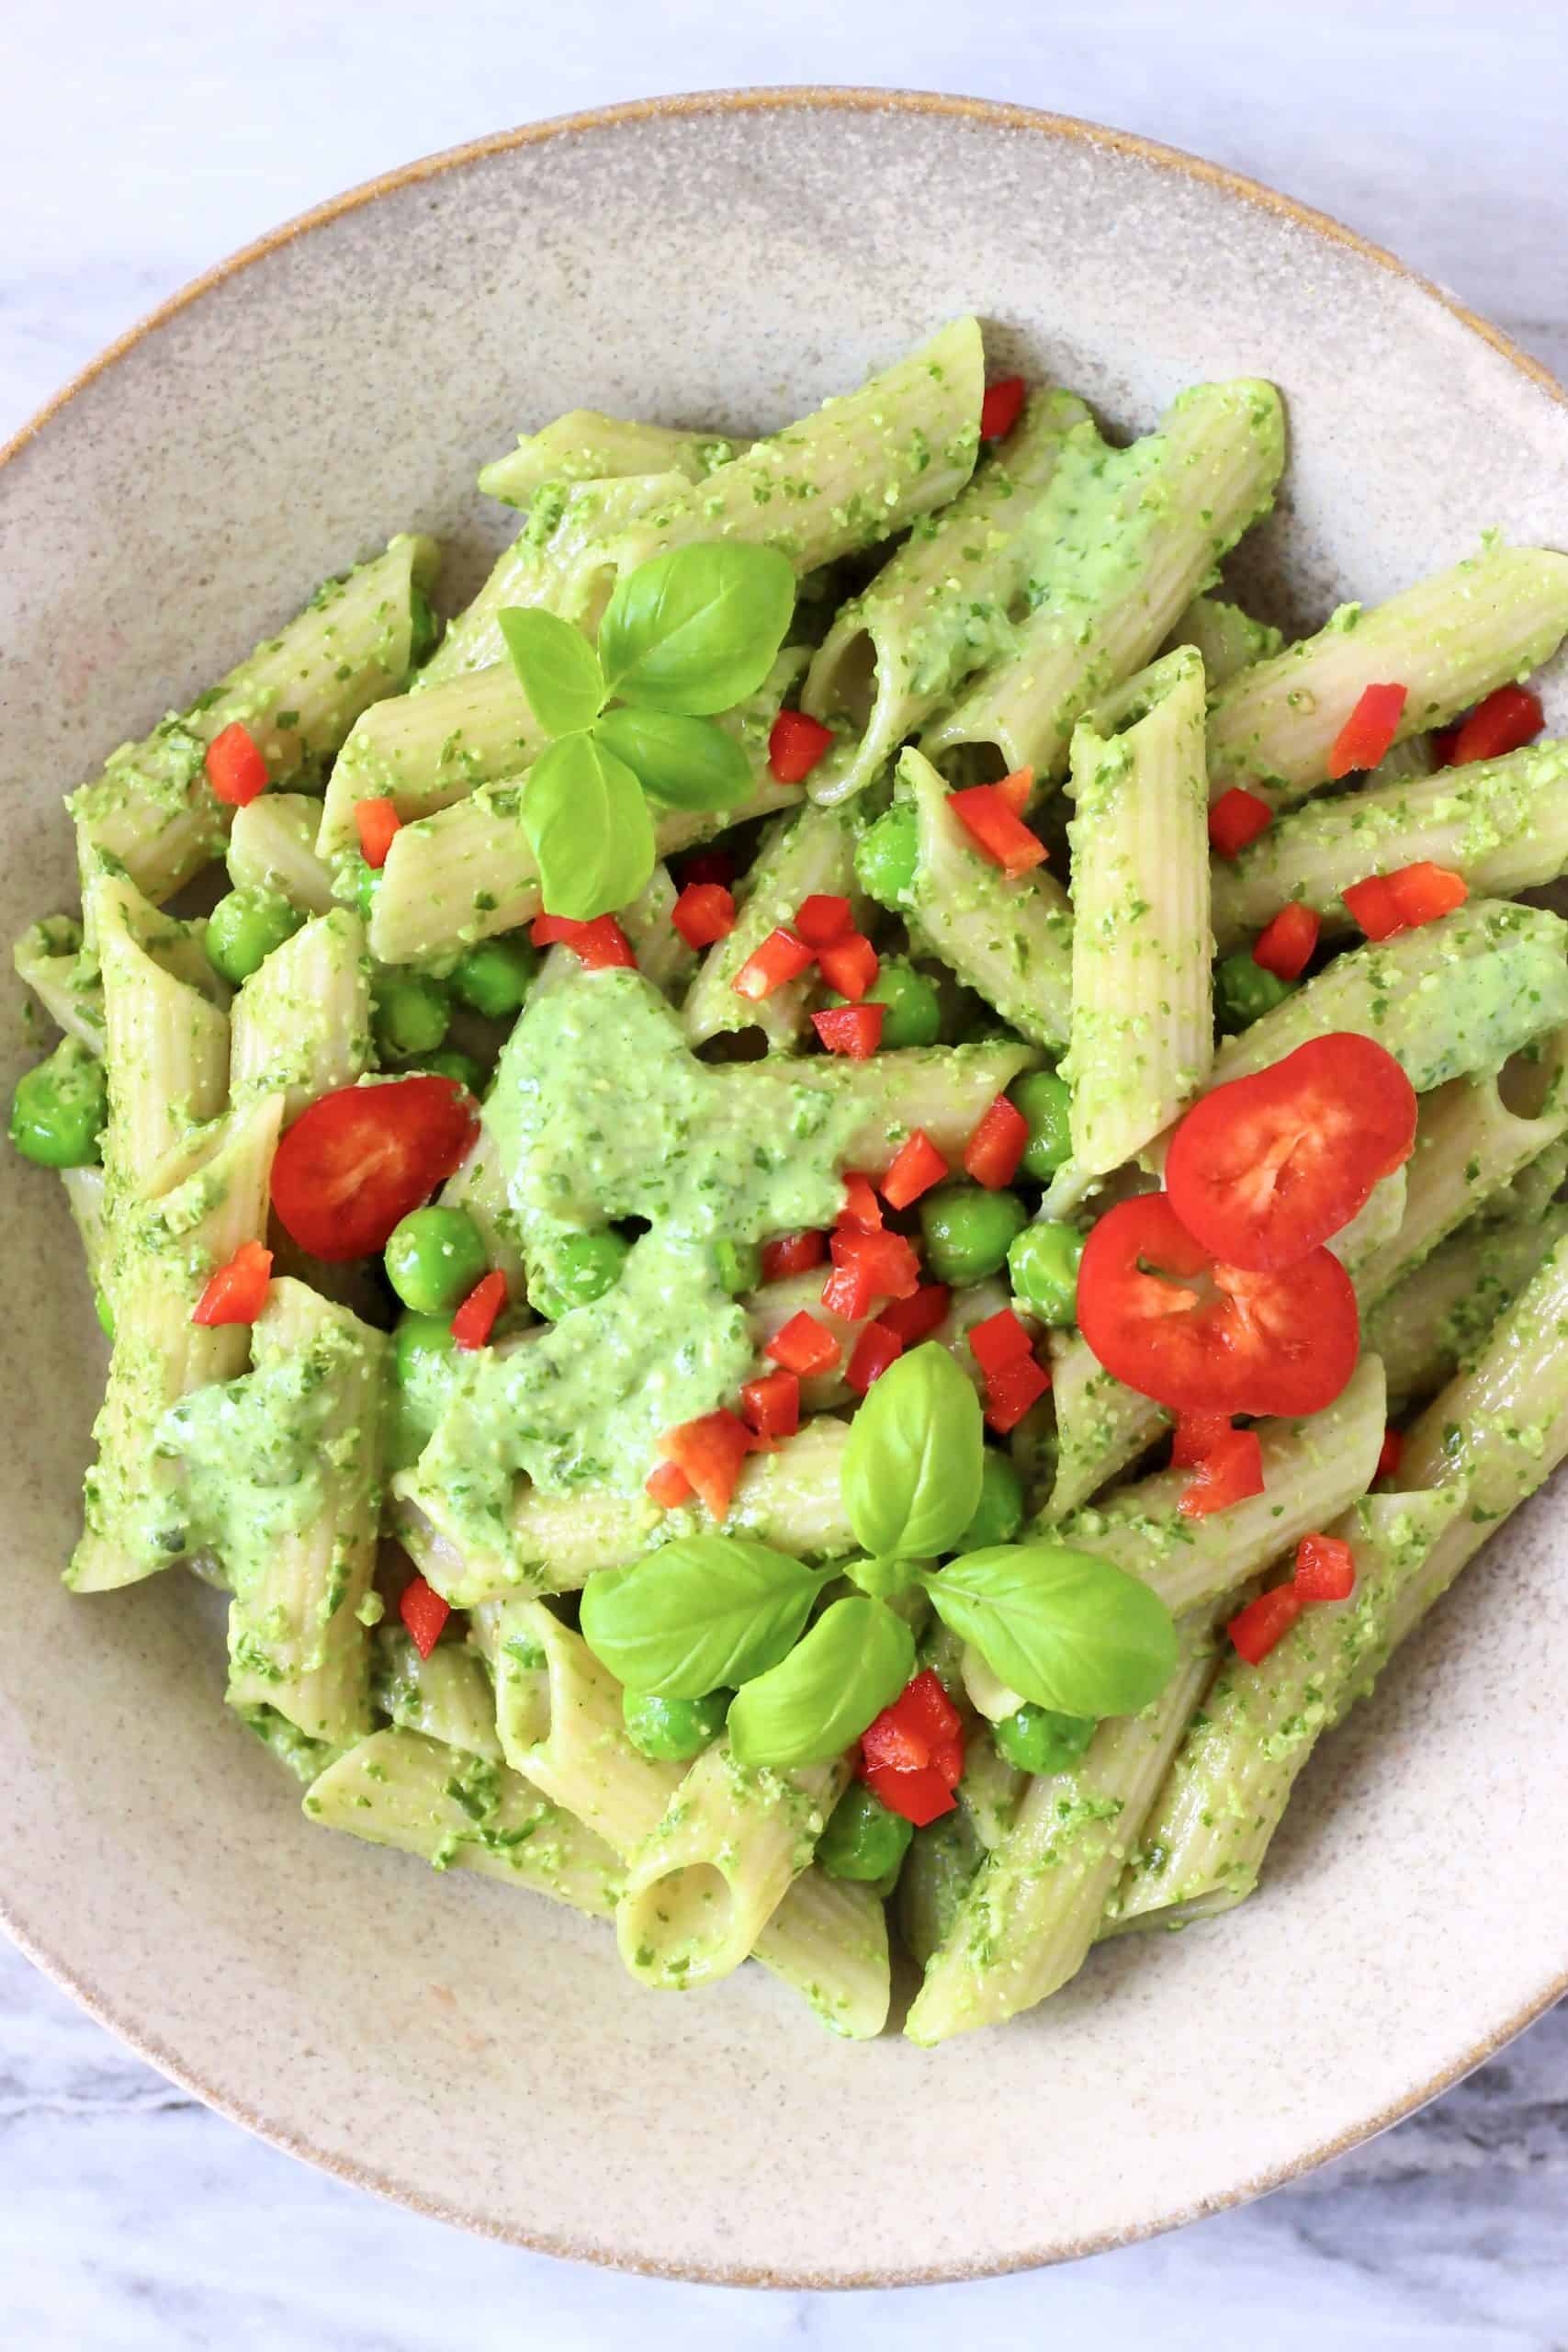 Penne pasta with pesto sauce, green peas and chopped red pepper in a beige bowl against a marble background